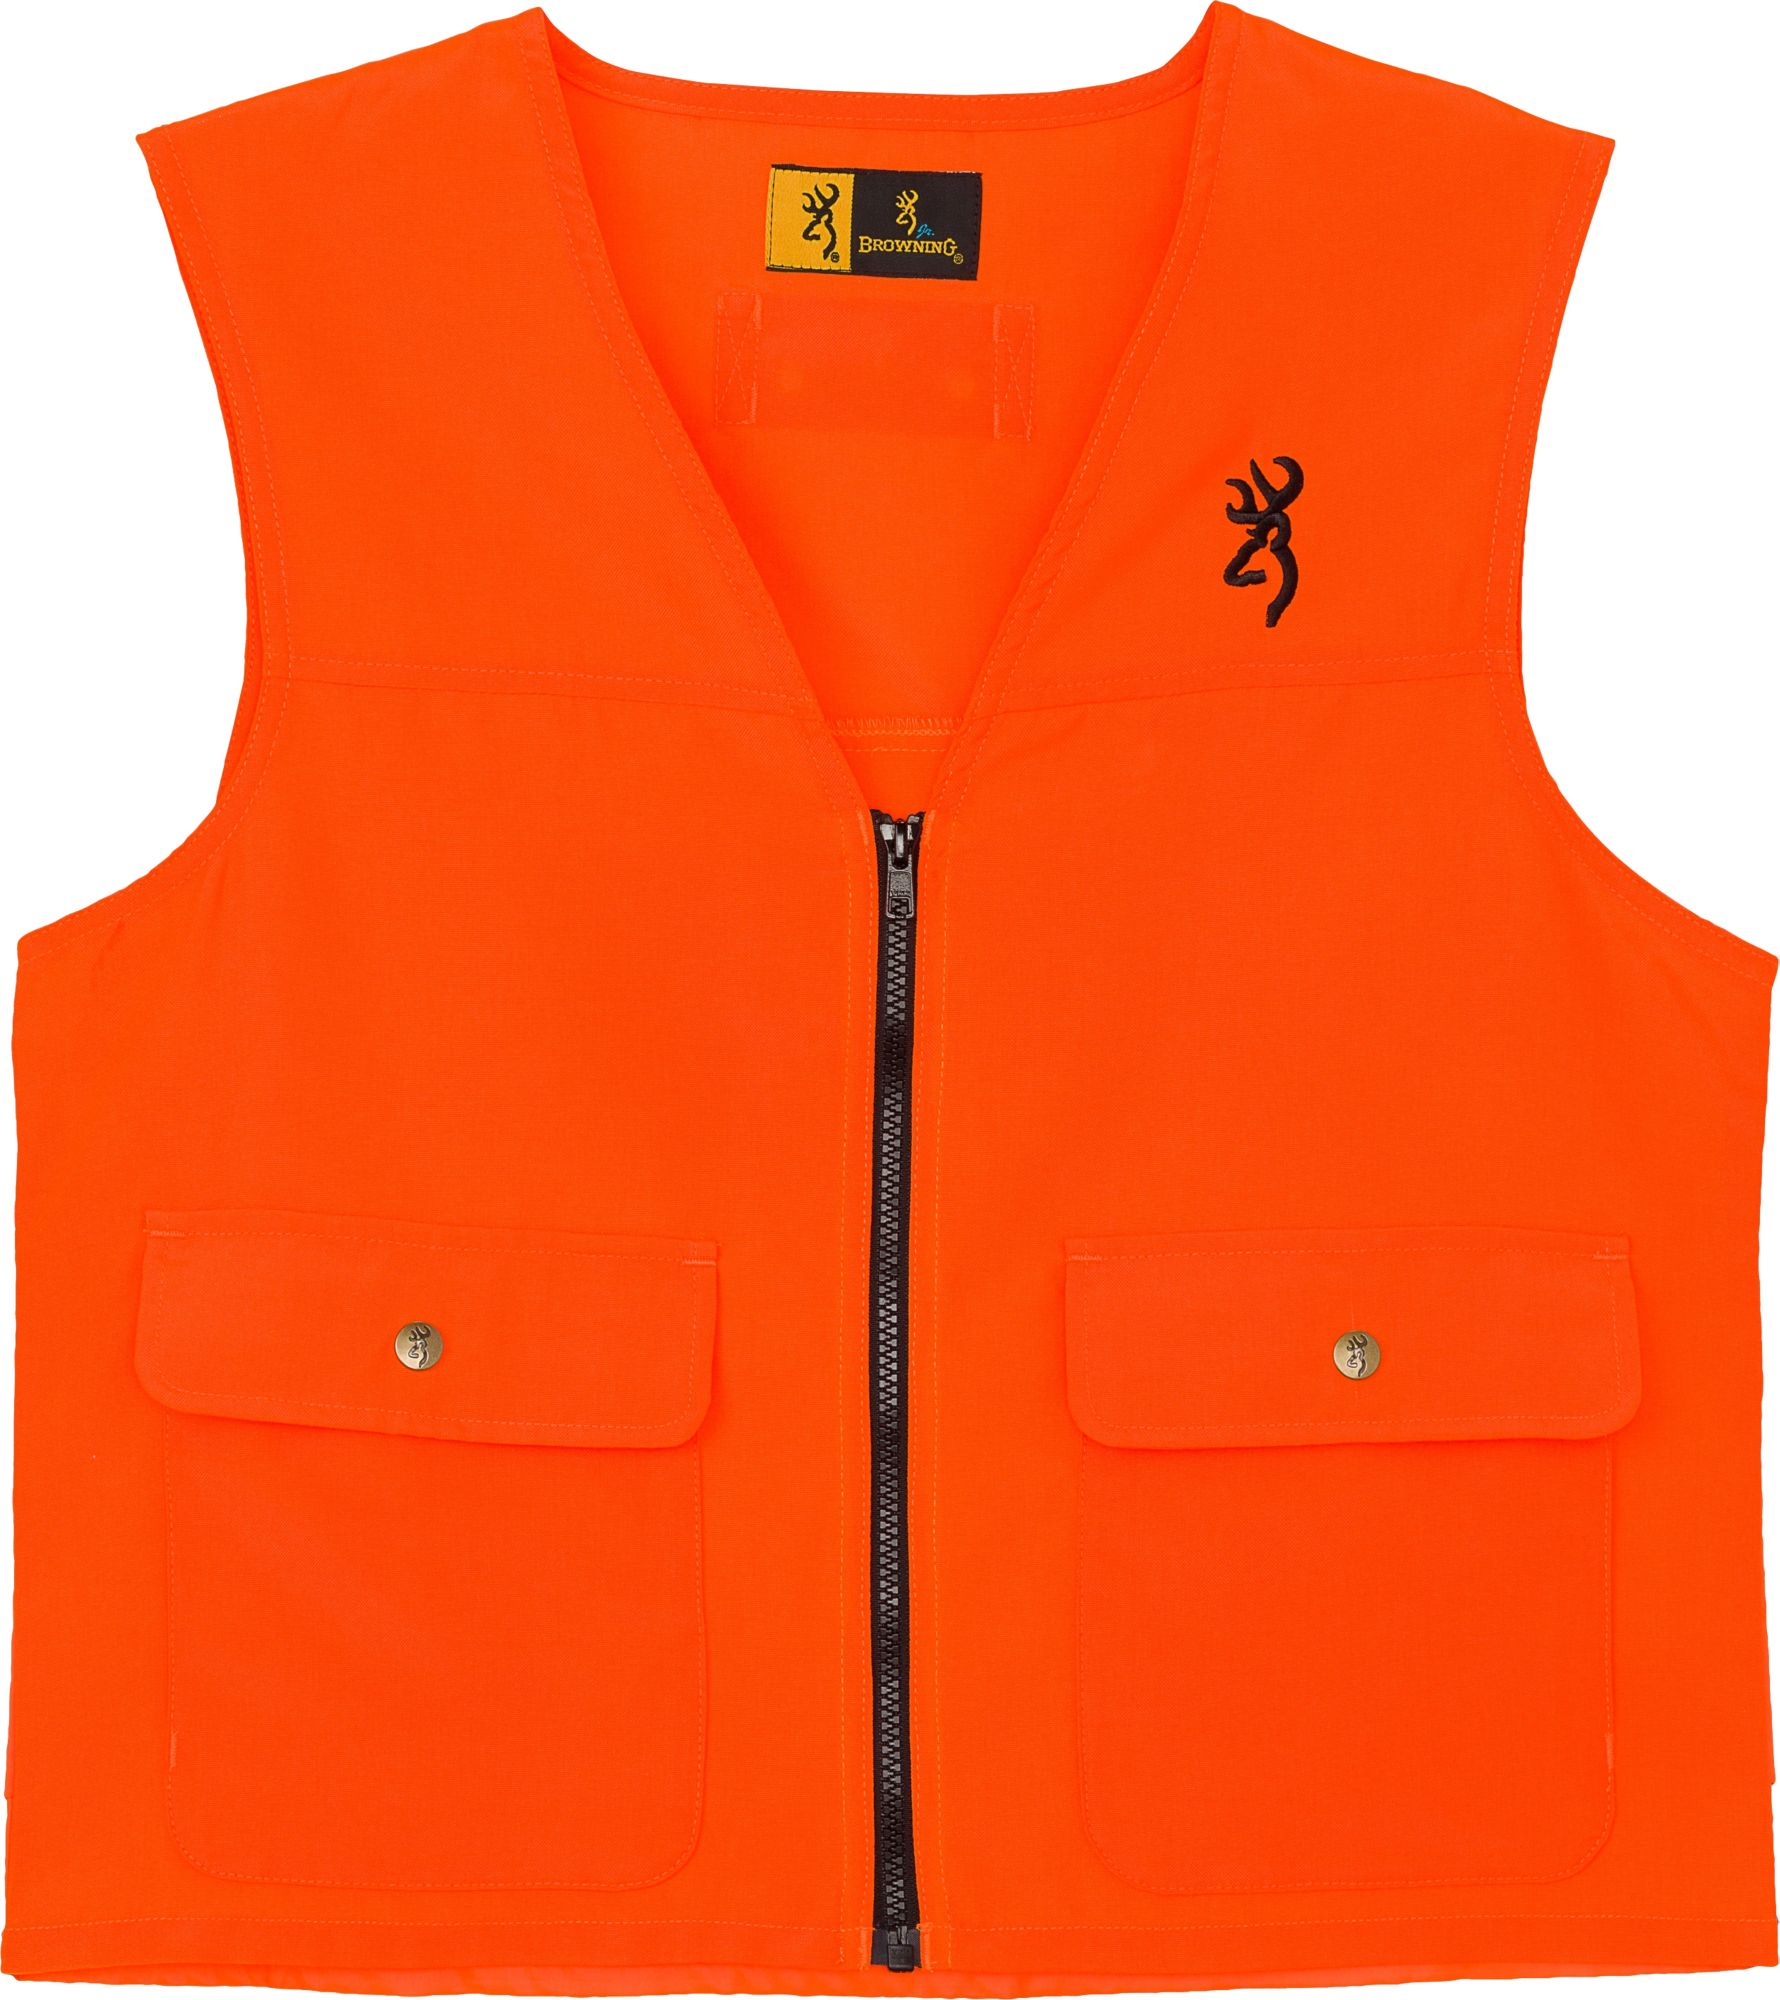 Browning Youth Safety Vest, Boy's, Size: Medium, Orange thumbnail